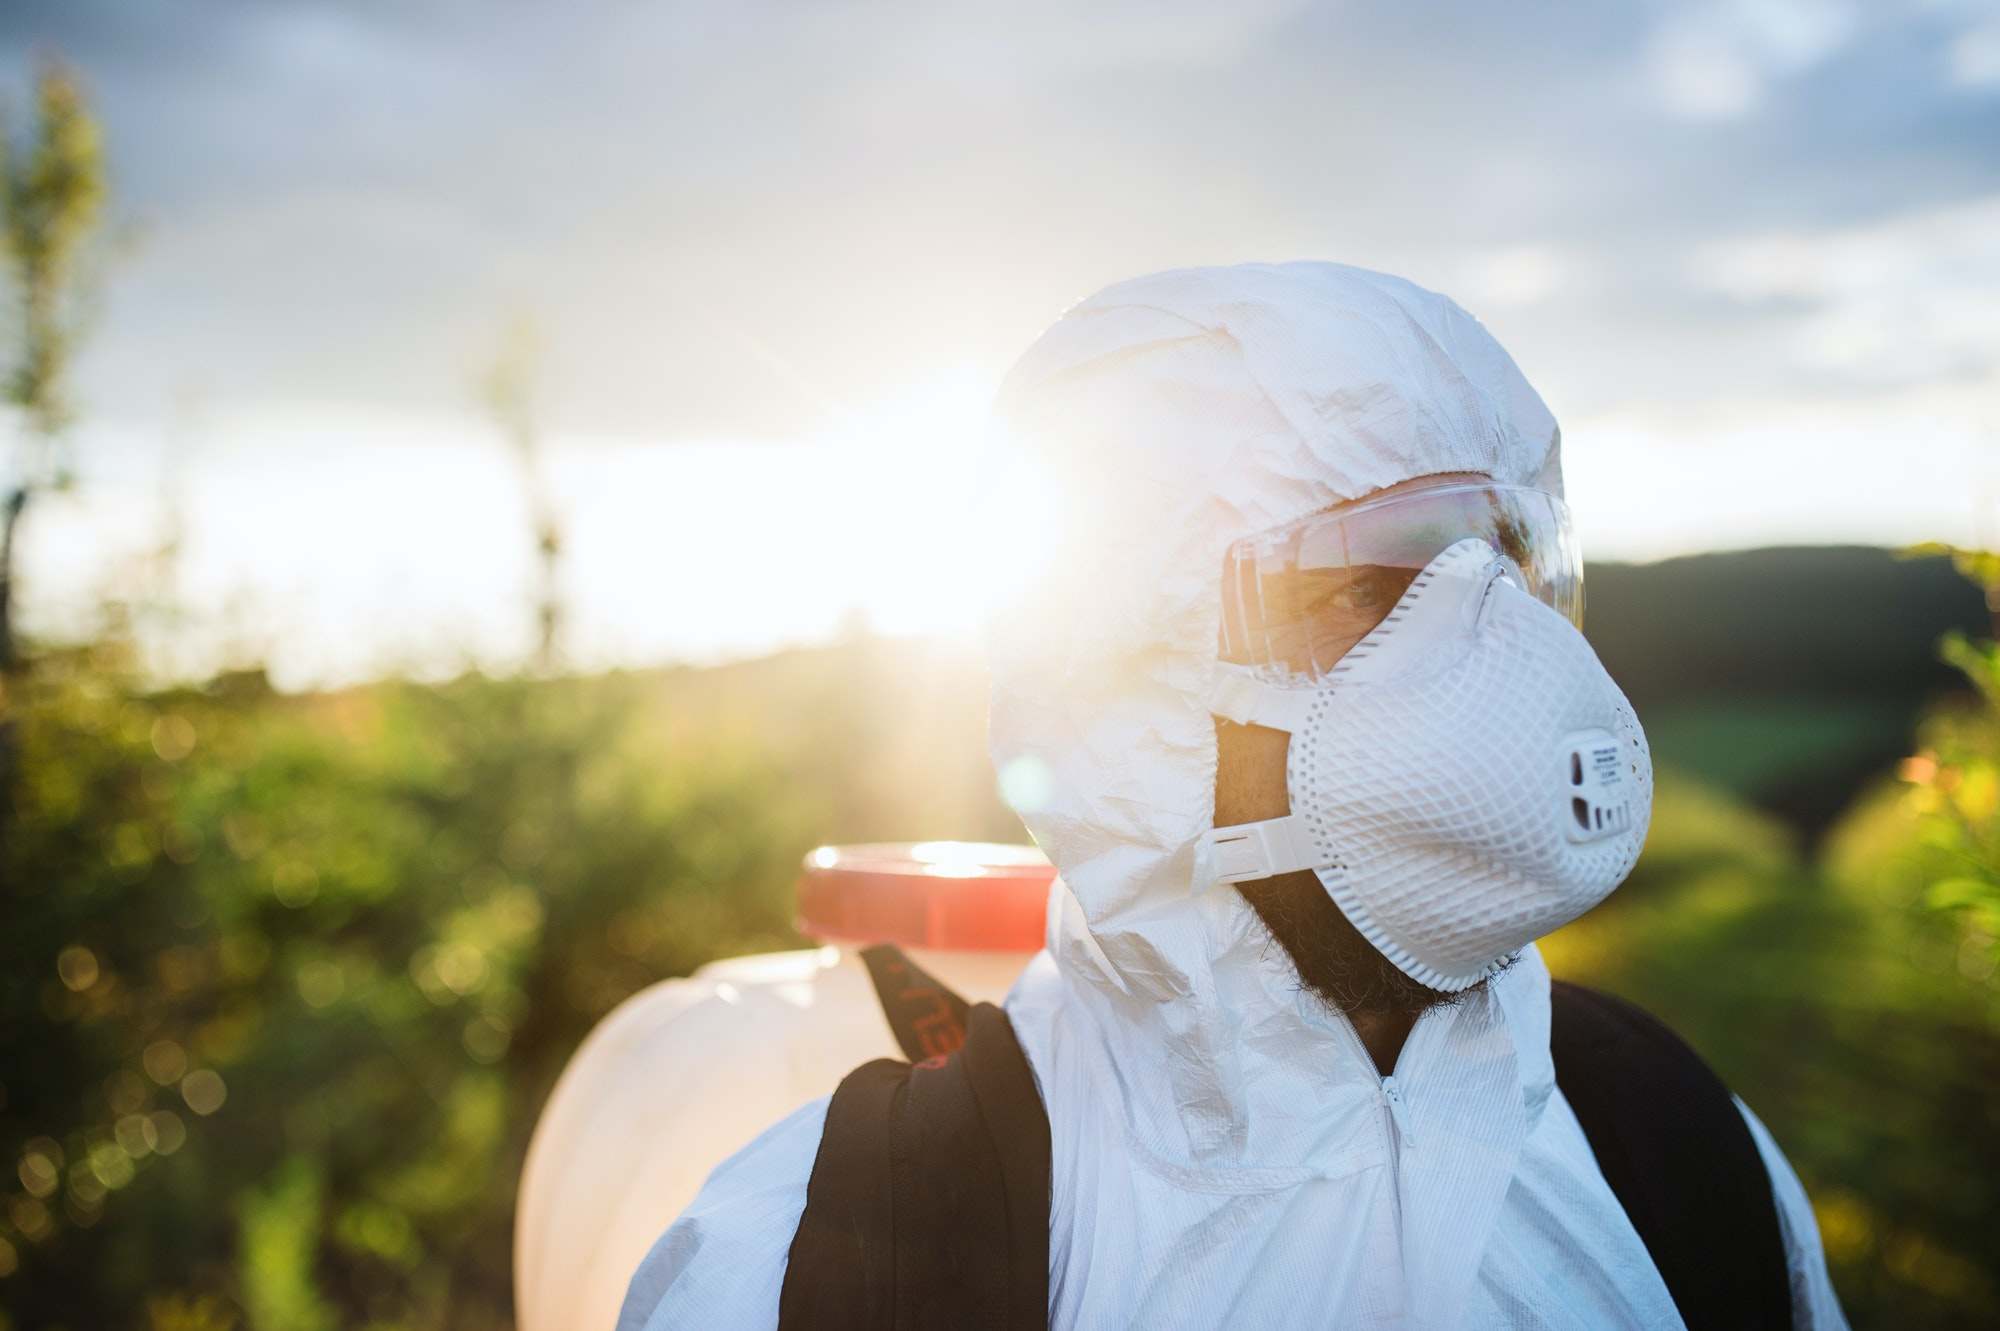 A farmer outdoors in orchard at sunset, using pesticide chemicals